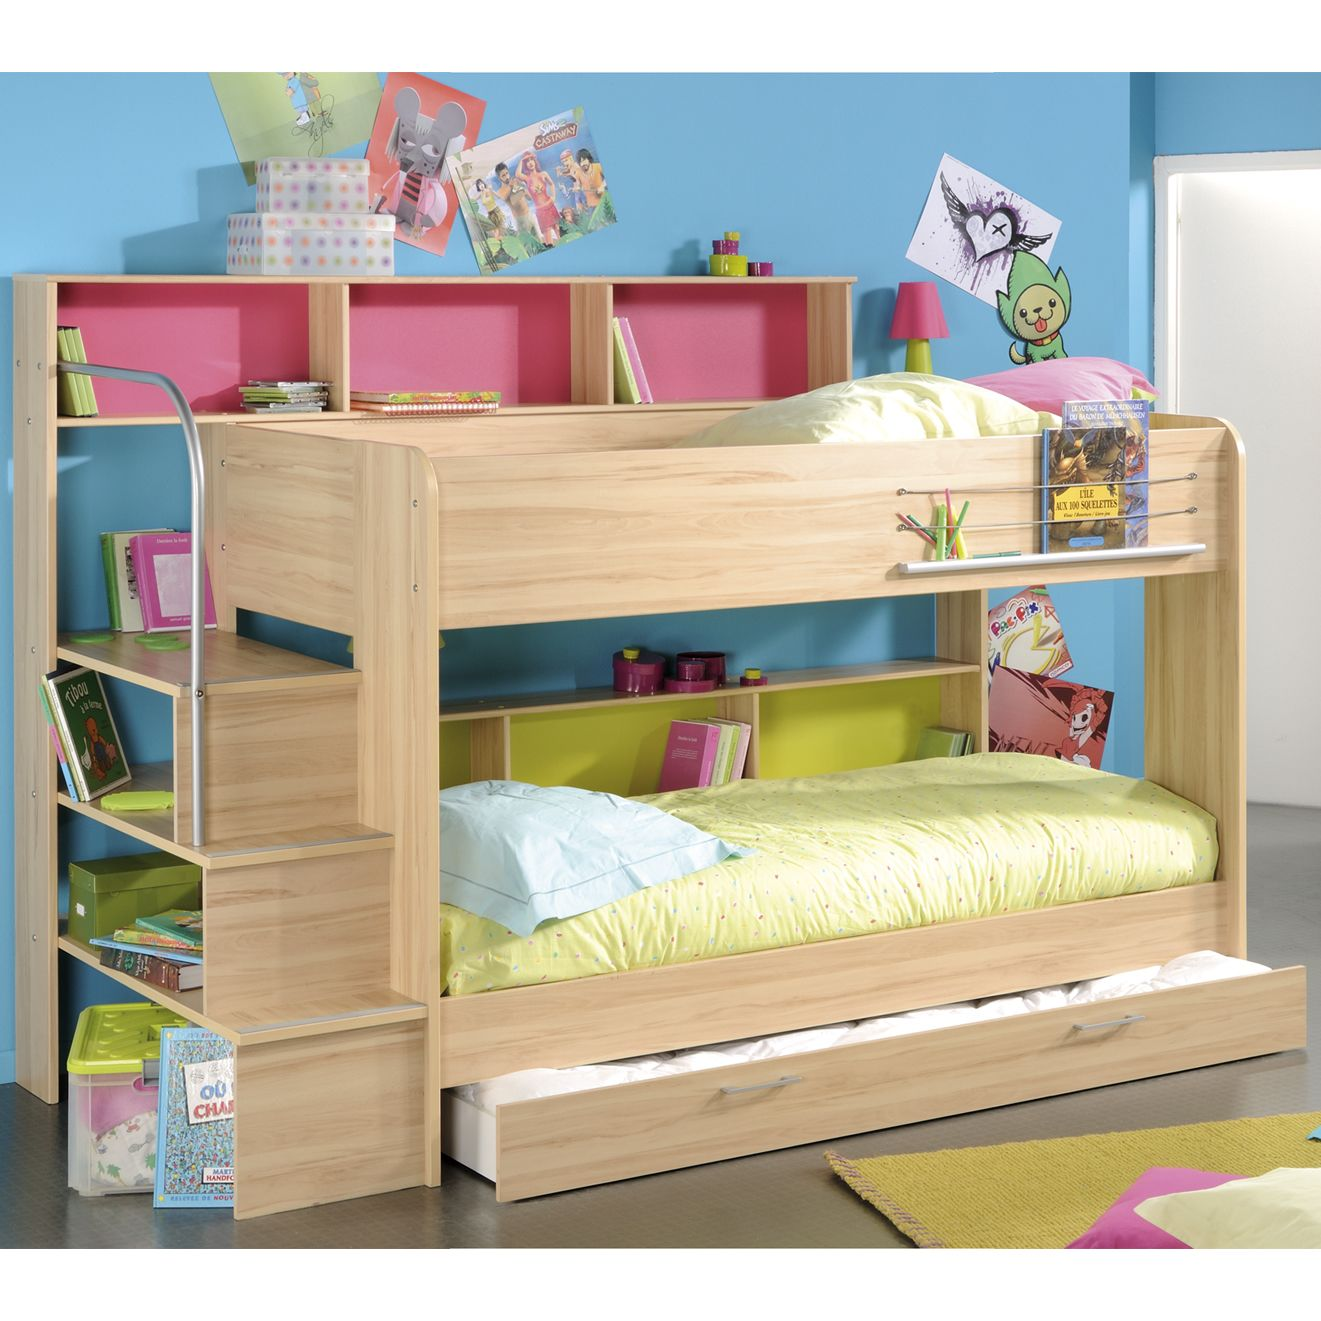 Childrens room ideas bunk beds - Furniture Fancy Decorating Children Loft Bed Plans For Little Girls Bedroom With Wooden Frame And